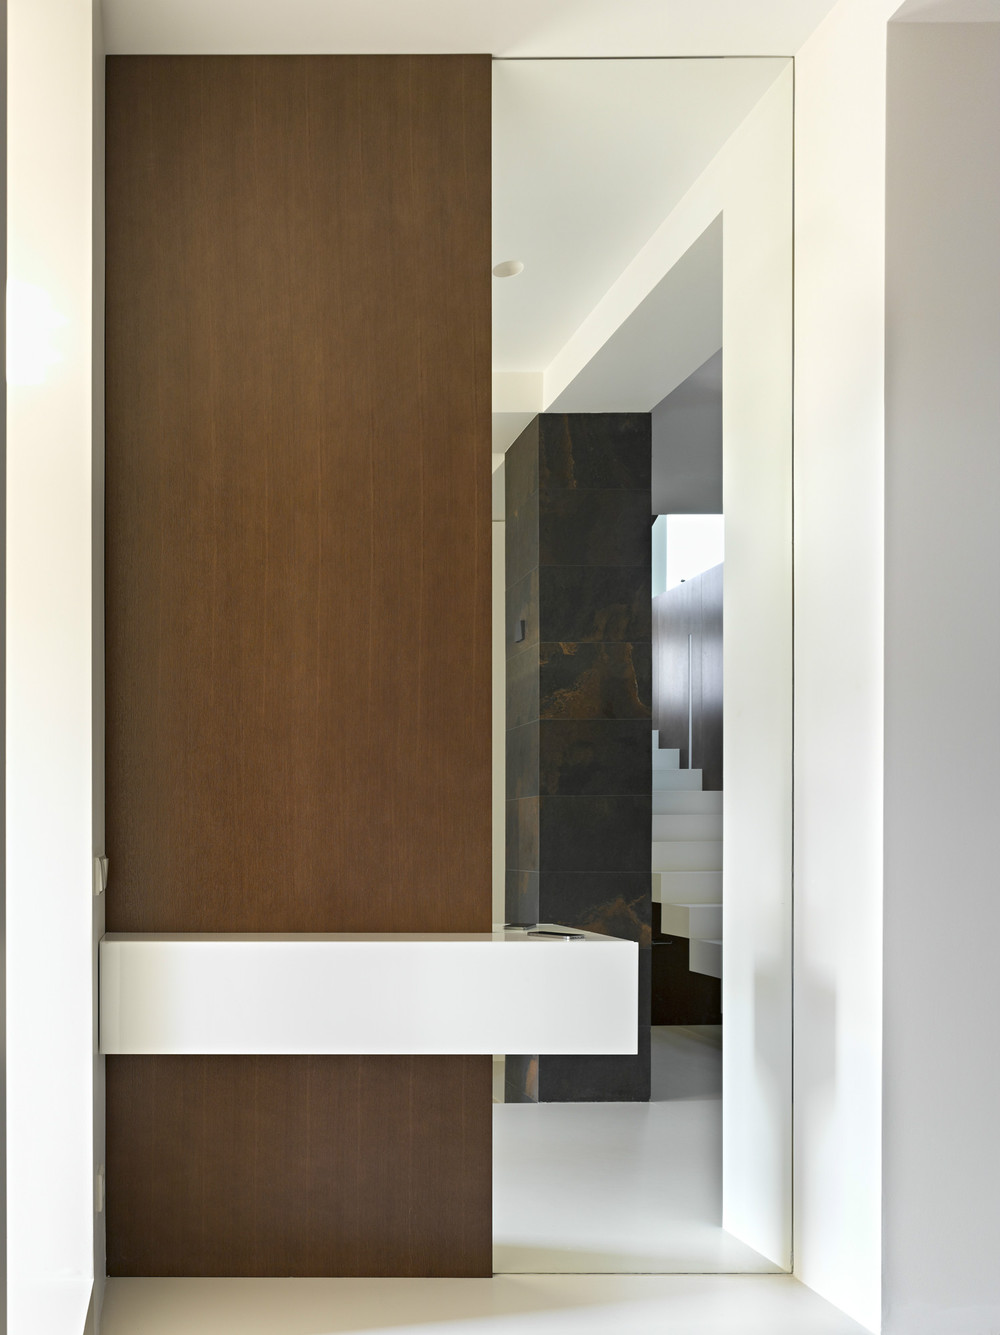 Modern Design - Invisible doors turn a home into an artistic feat of design